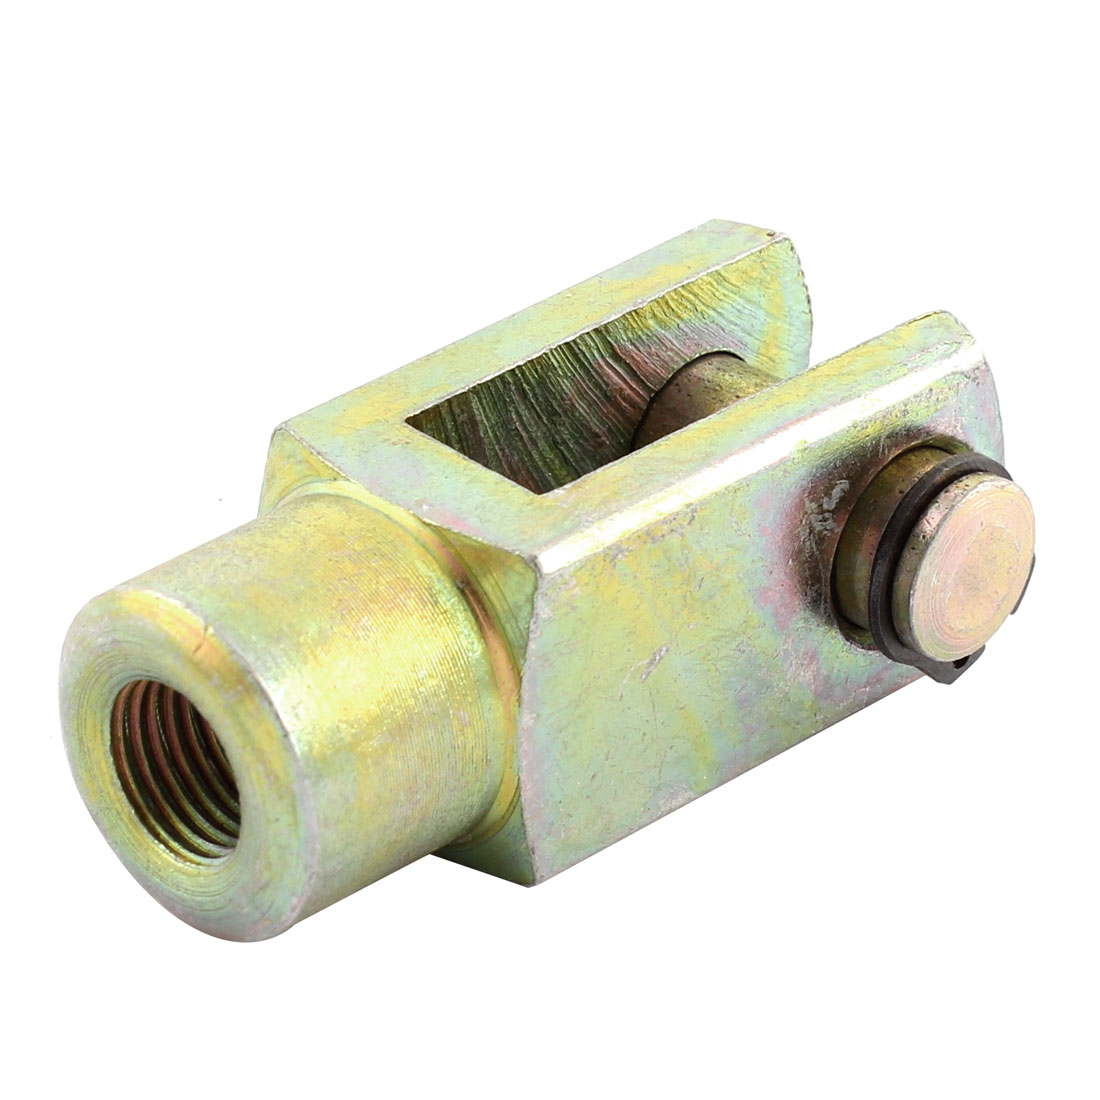 Female Thread Cylinder Rod Clevis End Air Pneumatic Part 8.5mm Bronze Tone